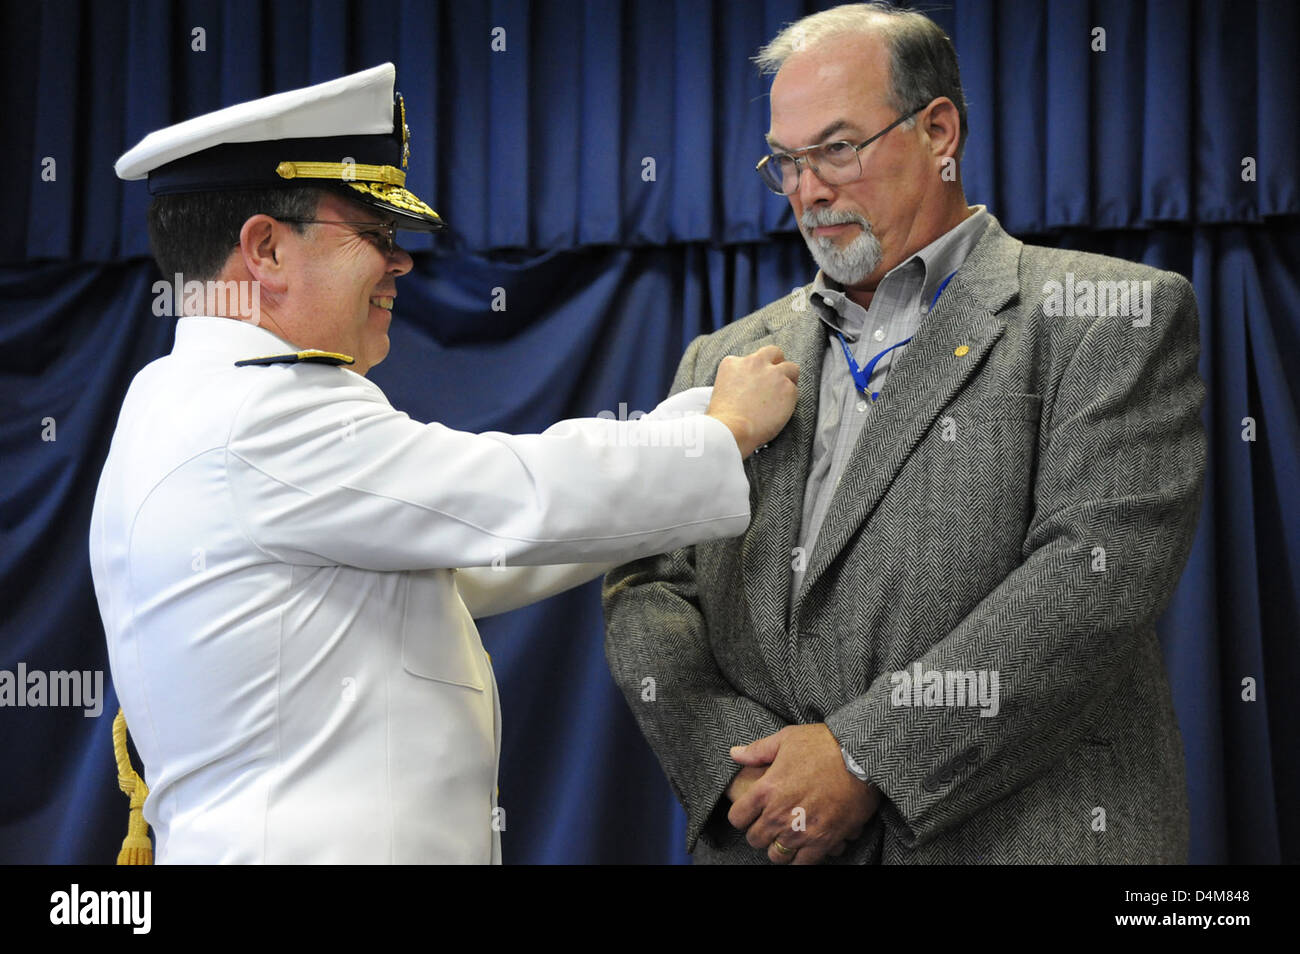 Deepwater Horizon Investigation Partners Ceremony Stock Photo